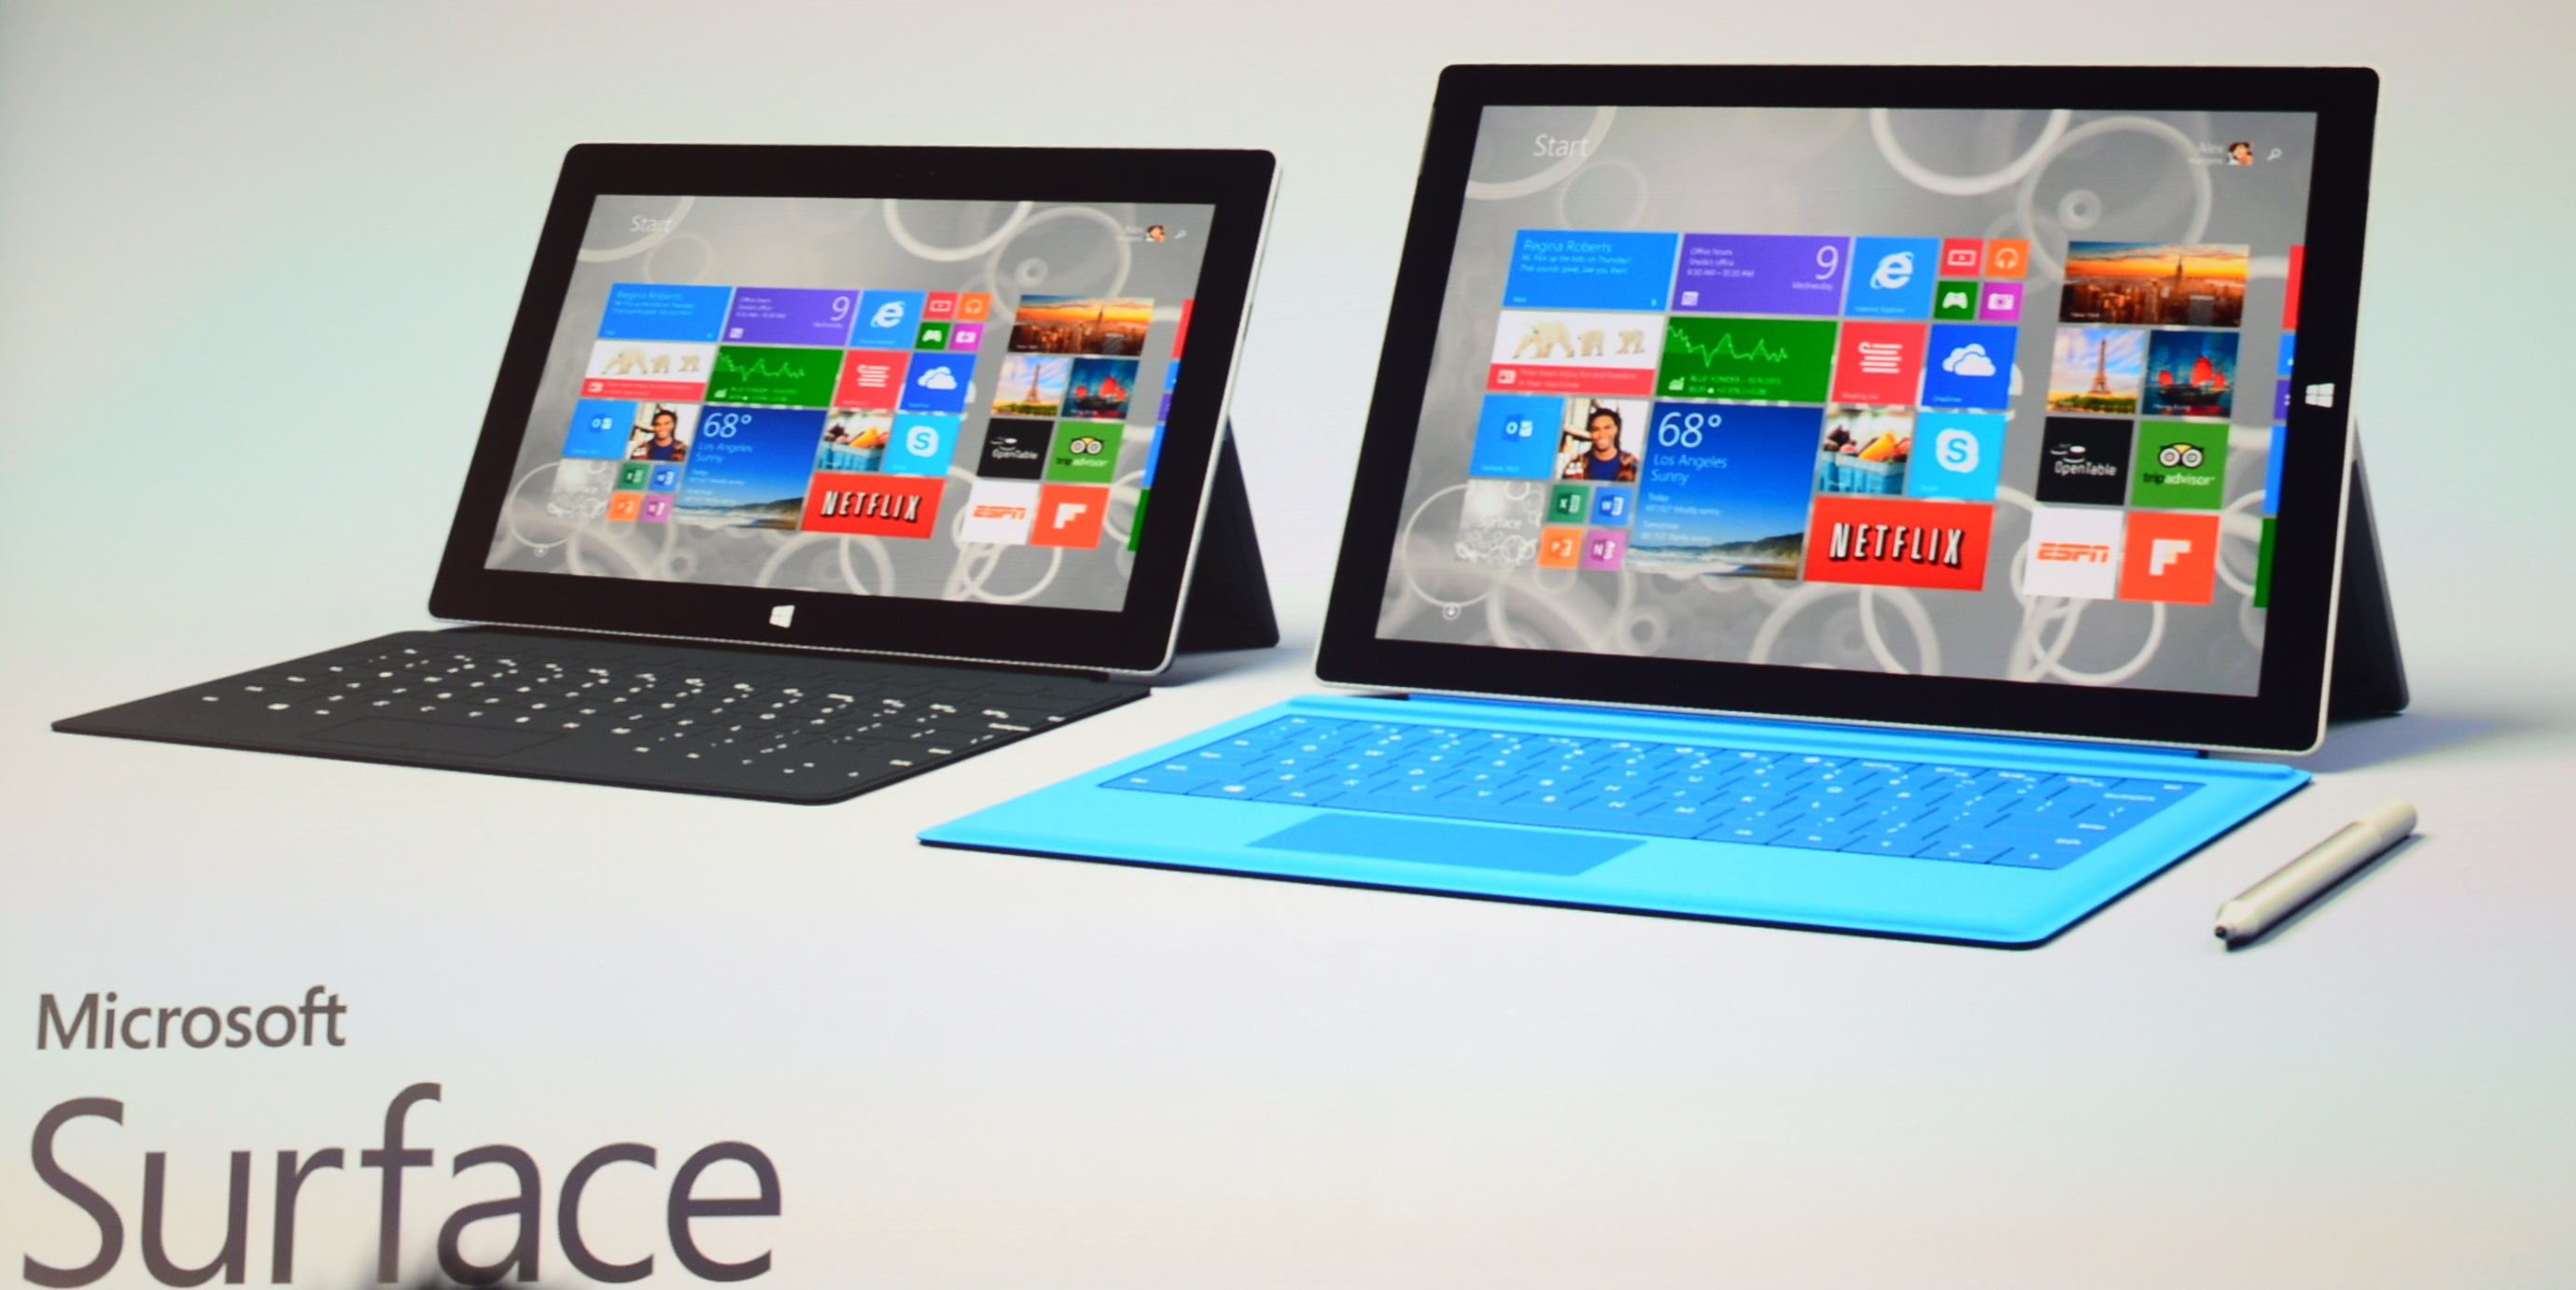 microsoft officially launches surface pro 3 tablet features haswell core i7 processor and. Black Bedroom Furniture Sets. Home Design Ideas